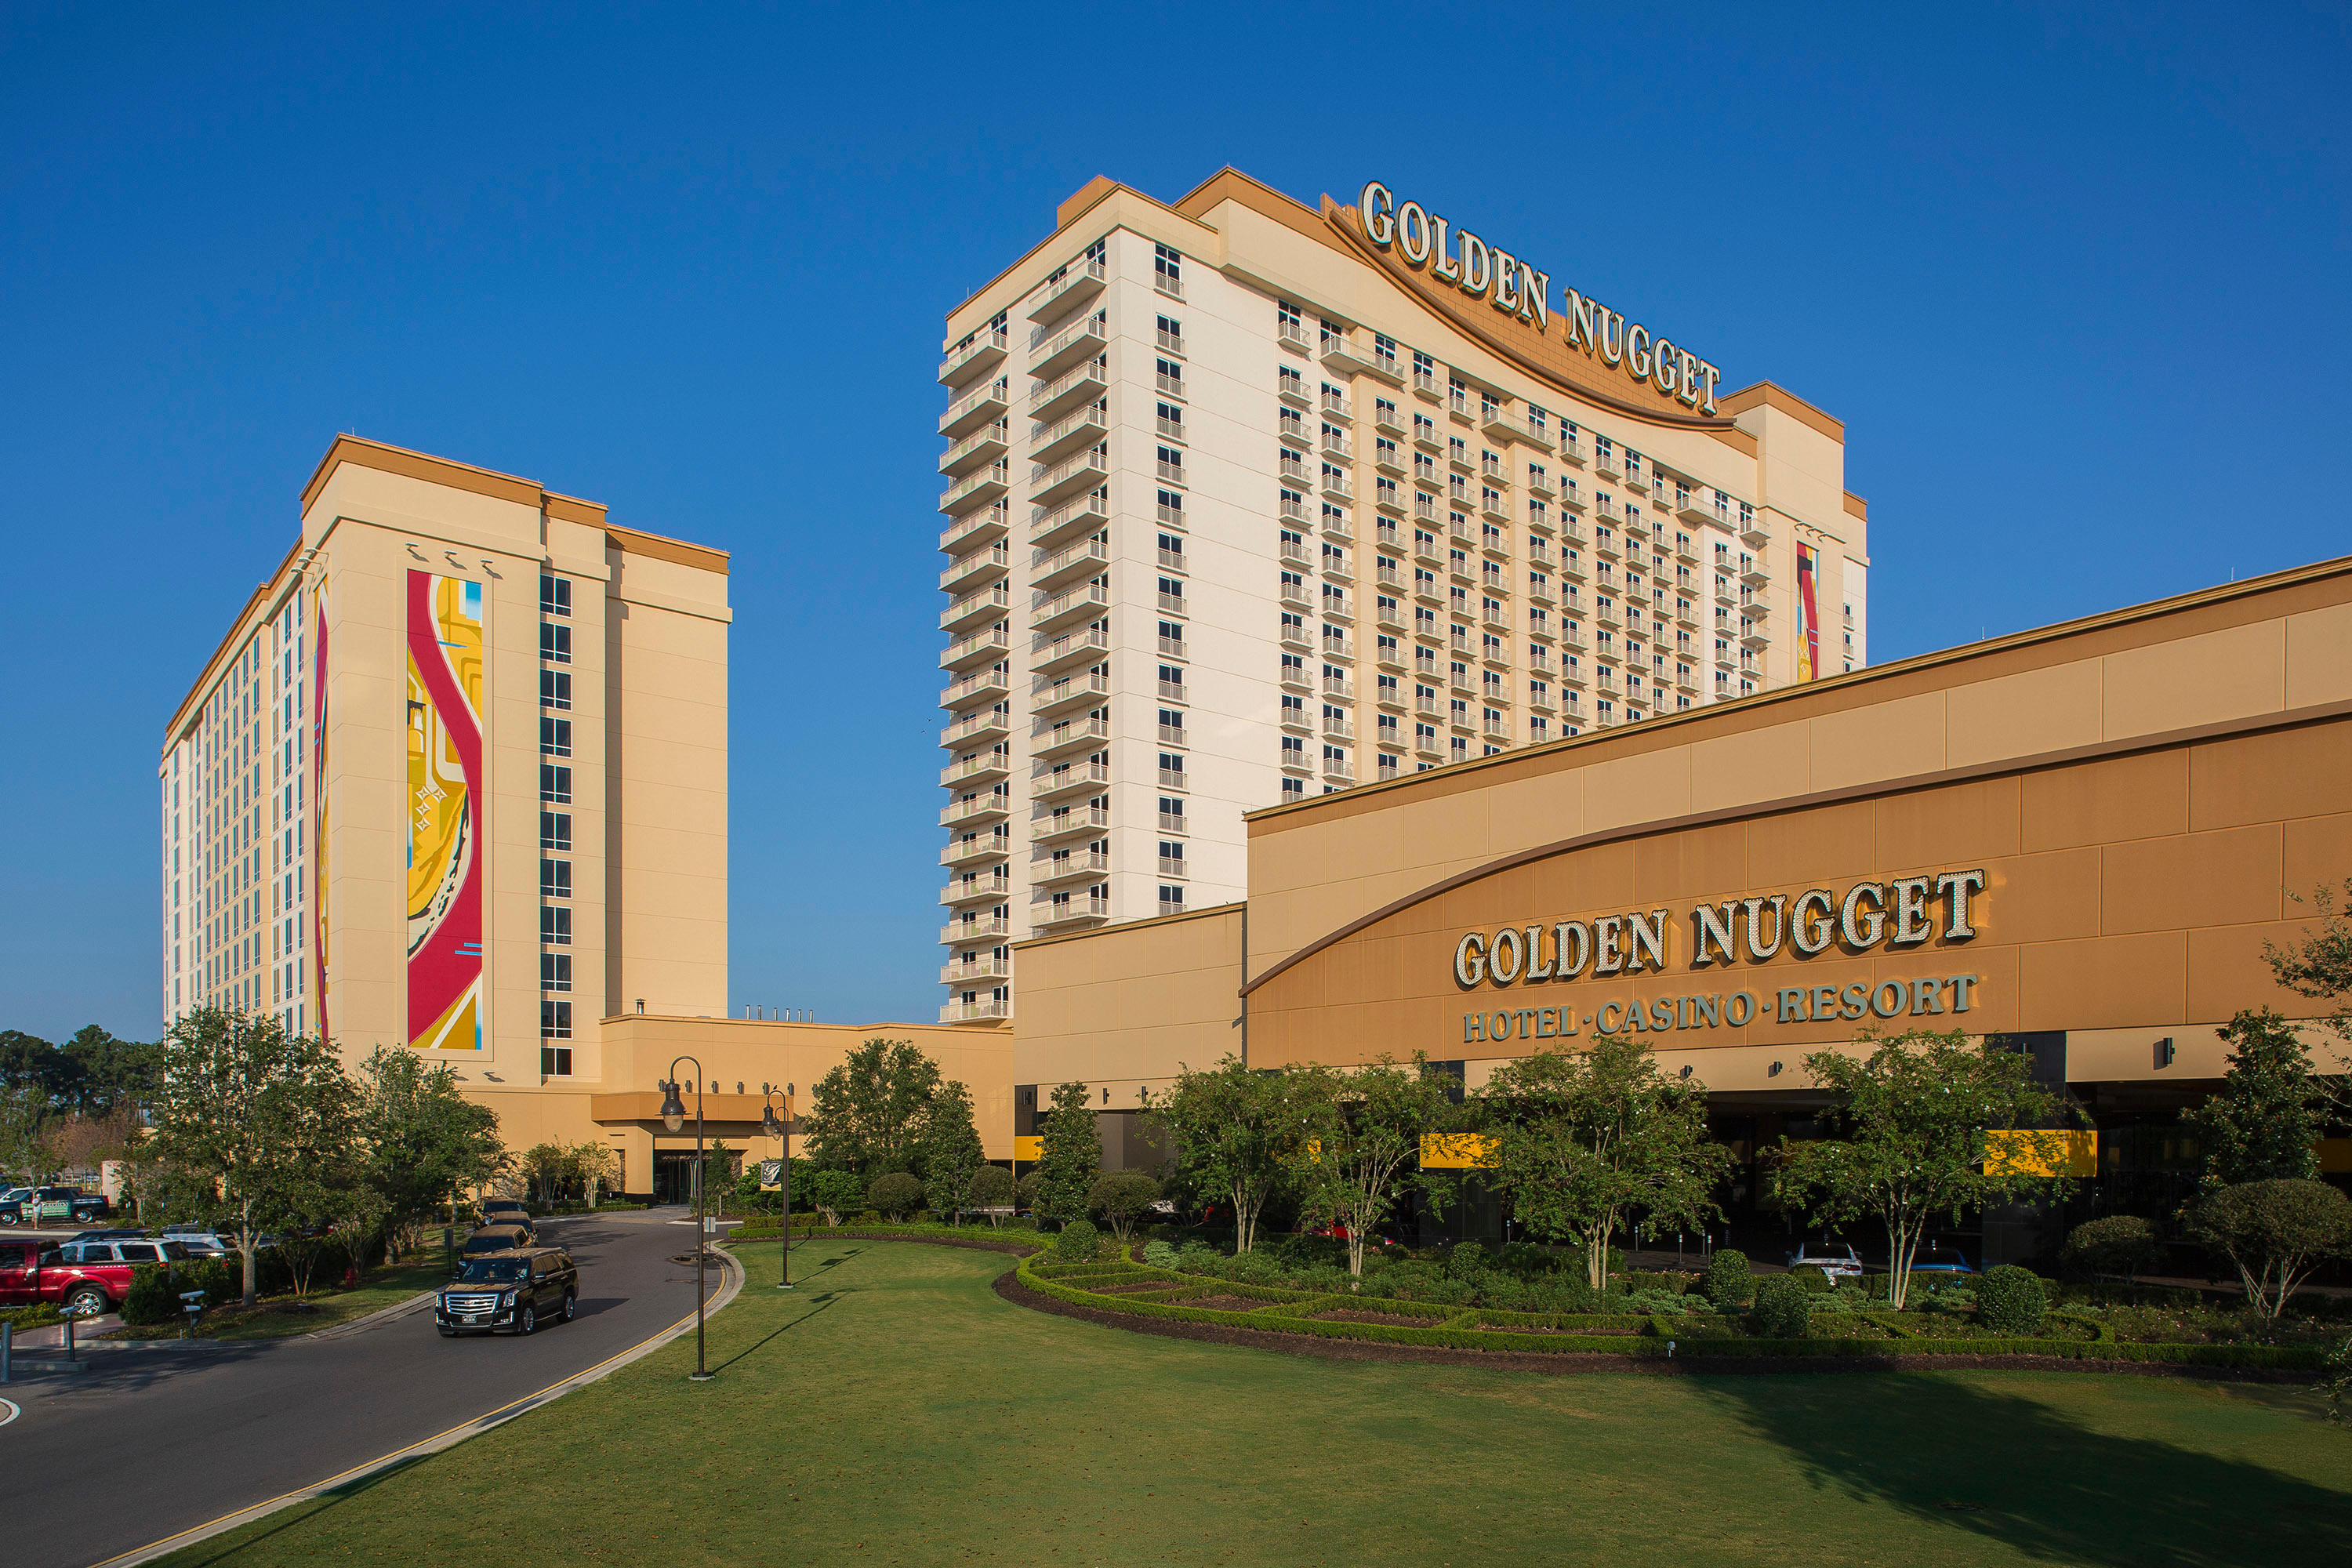 Lake charles poker casinos